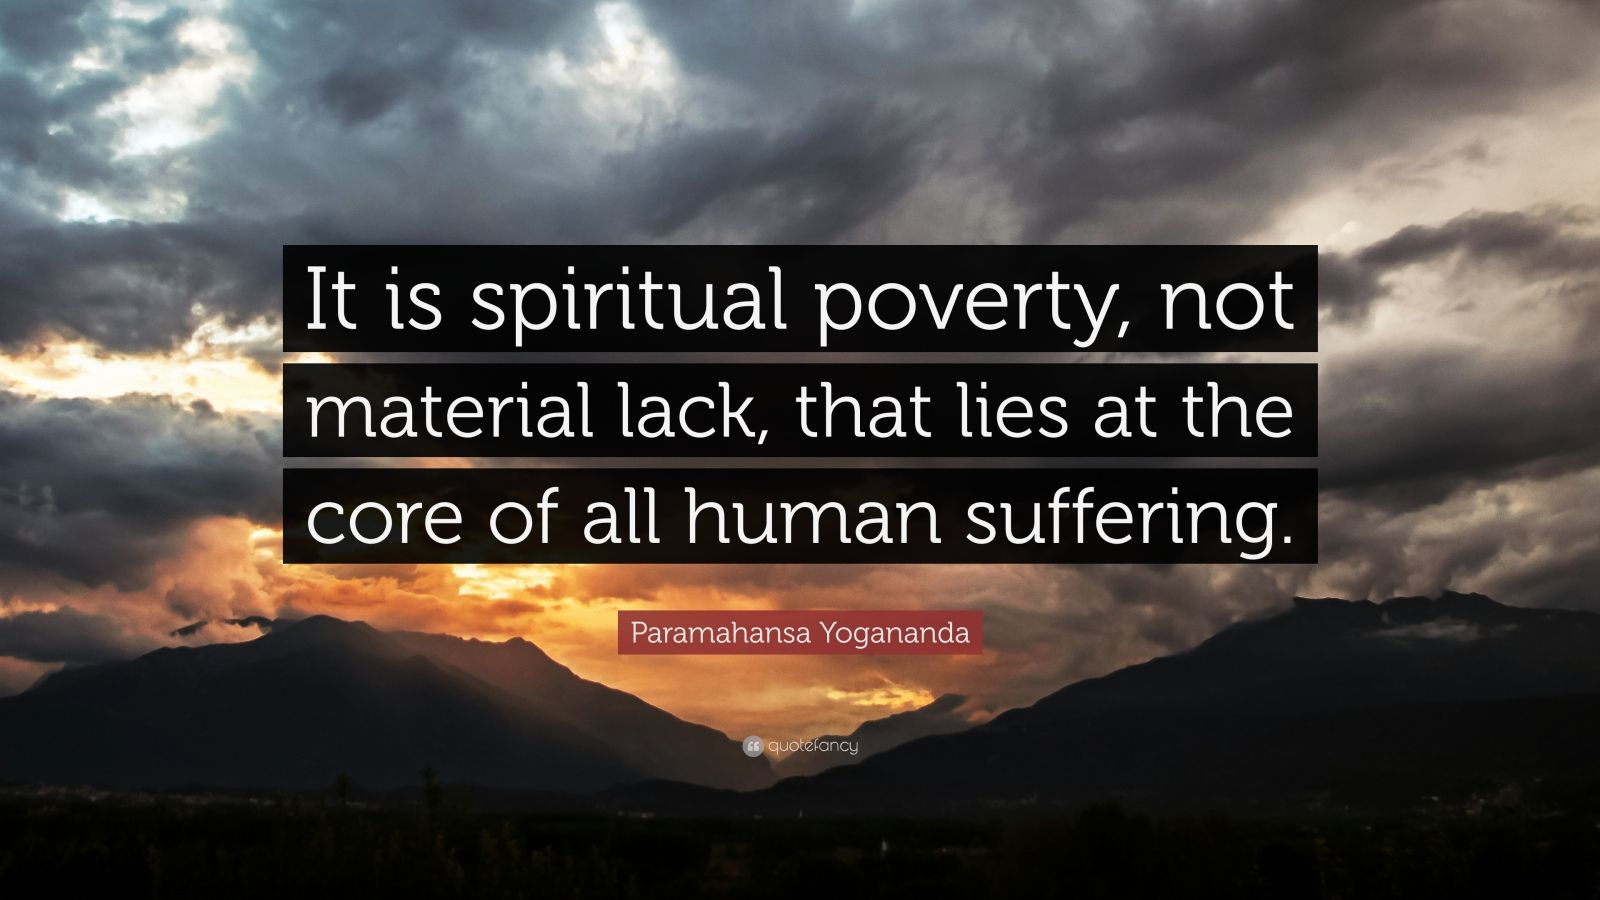 """Paramahansa Yogananda Quote: """"It is spiritual poverty, not material lack, that lies at the core of all human suffering."""""""